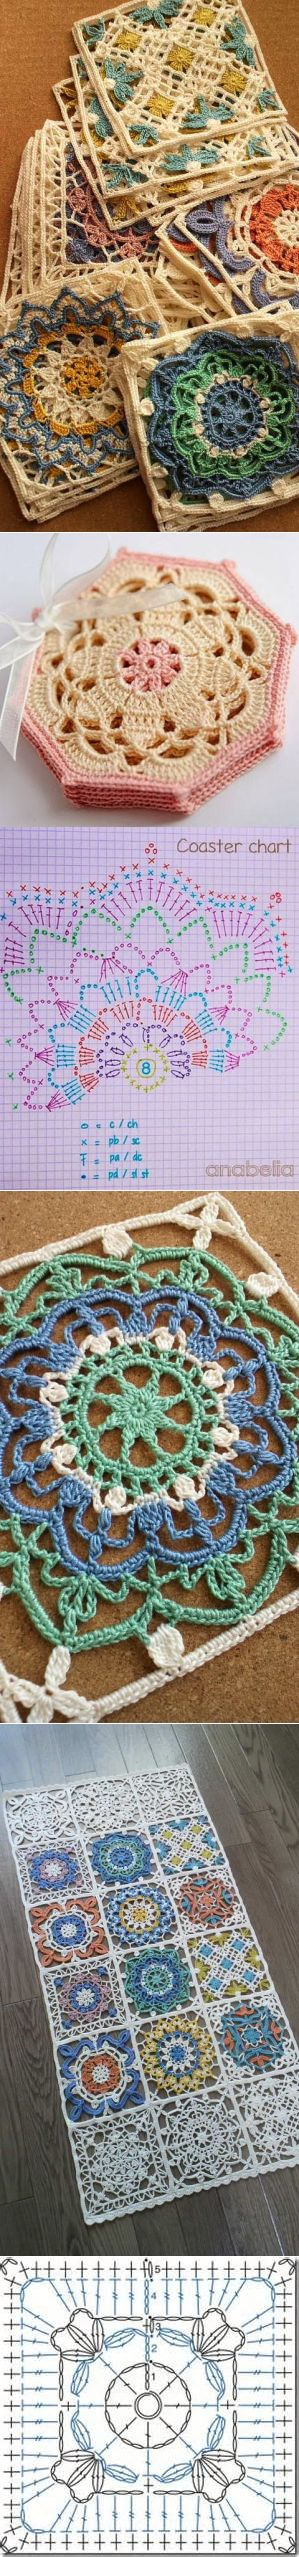 Crochet Turkish Tiles